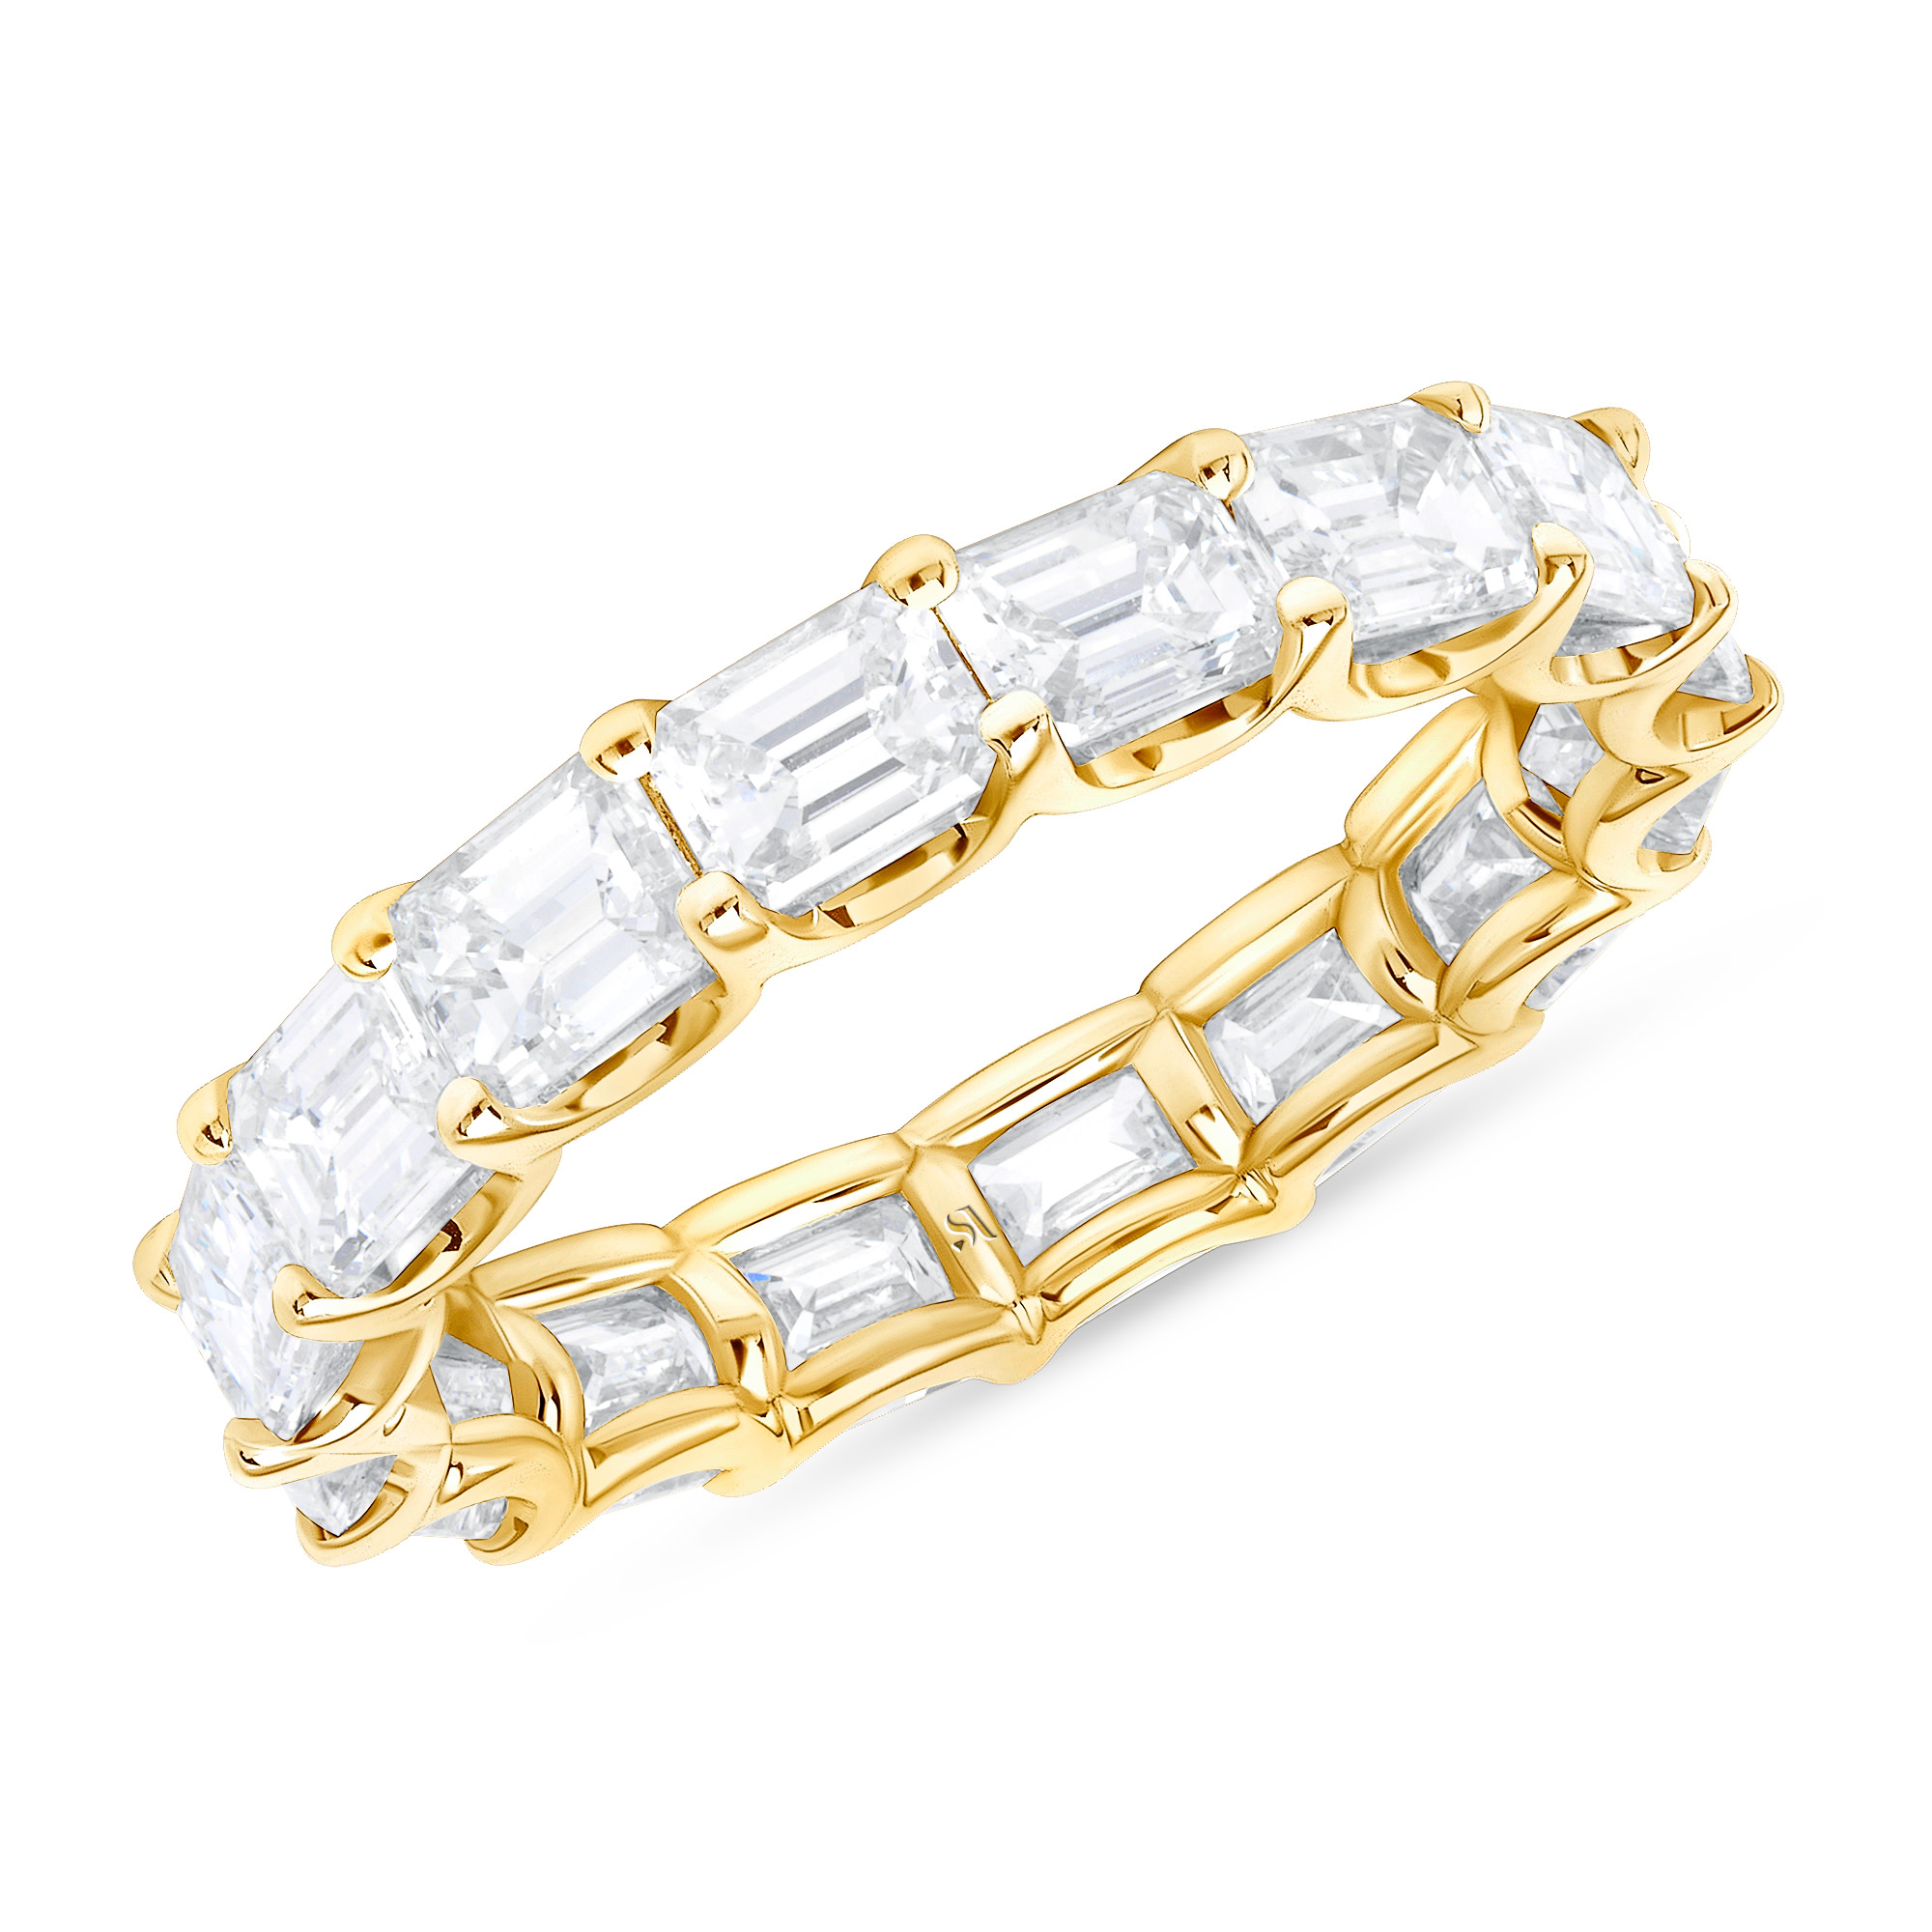 emerald cut eternity band yellow gold | emerald cut eternity ring